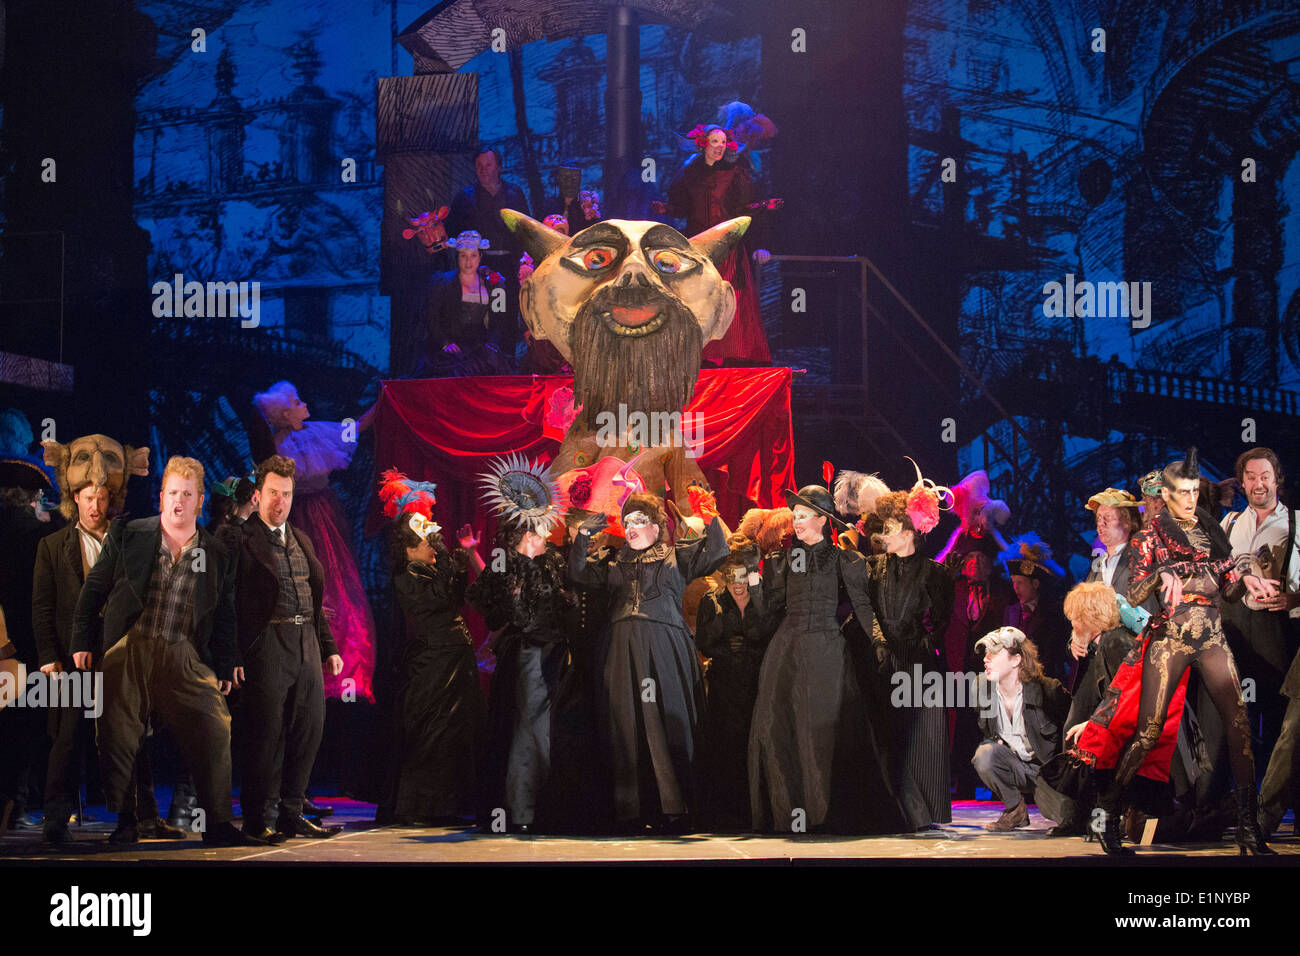 Dress rehearsal of the Berlioz opera Benvenuto Cellini directed by Terry Gilliam at the London Coliseum. - Stock Image